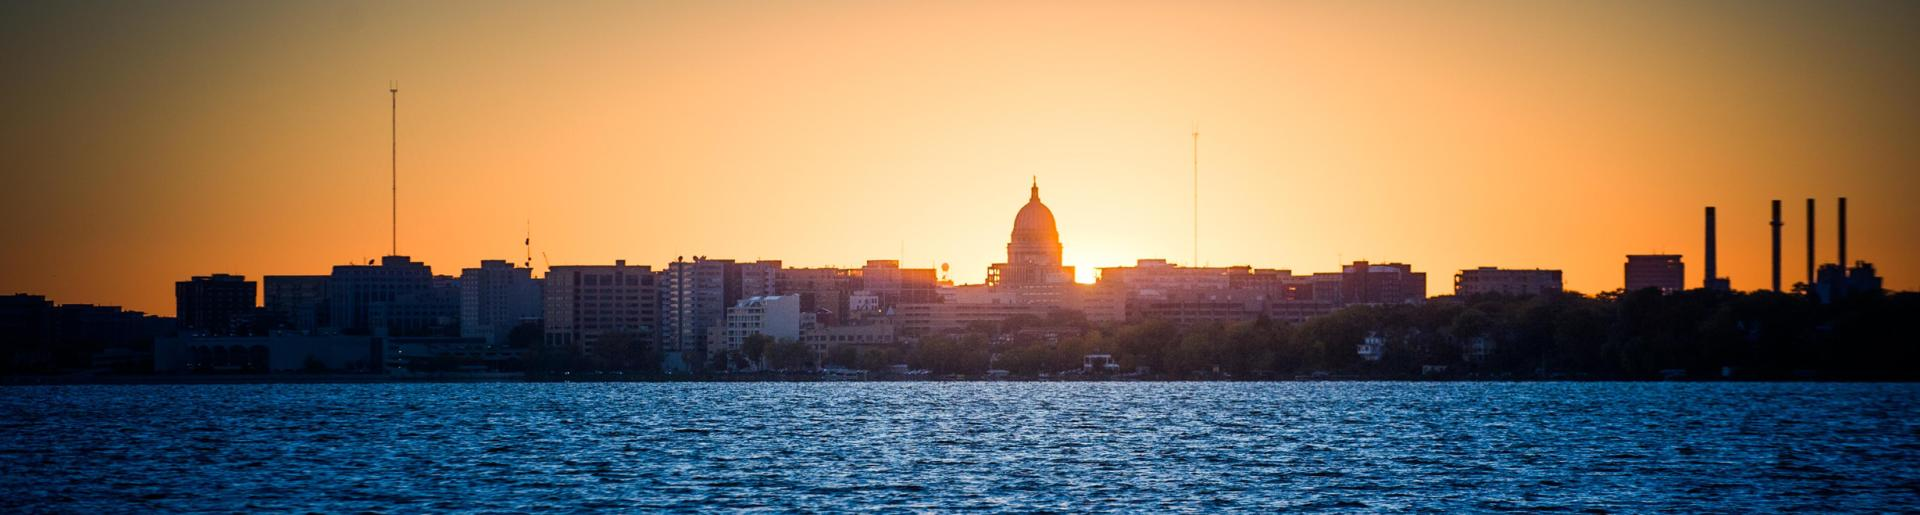 Capitol Skyline at Sunset